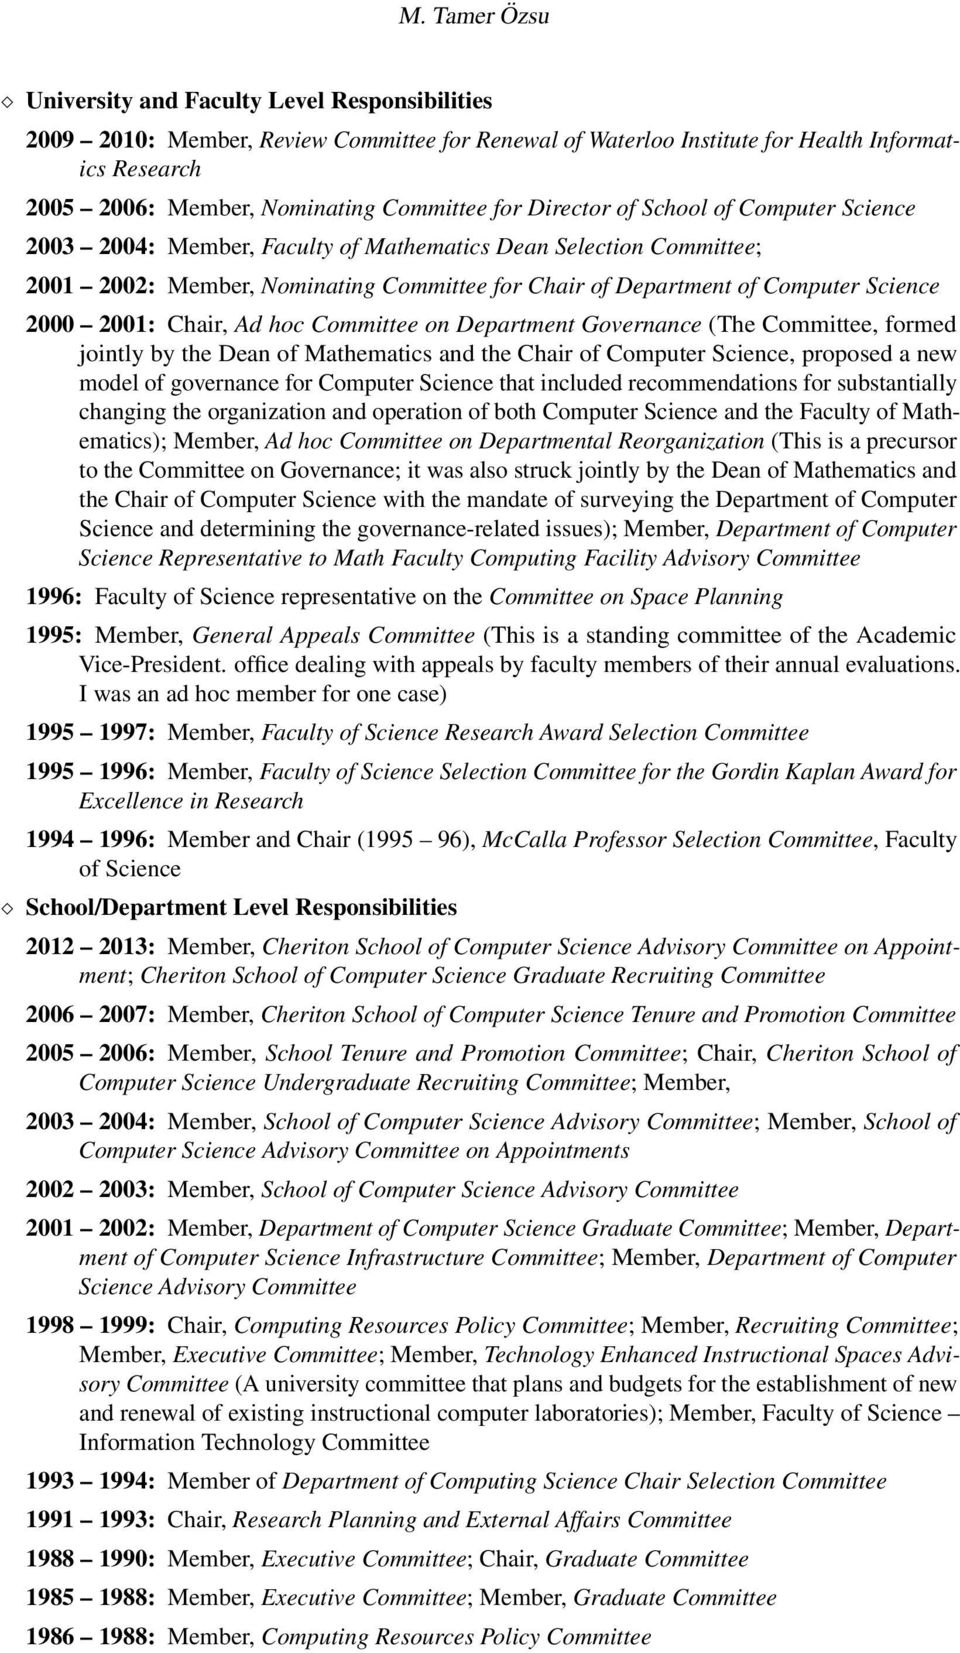 2001: Chair, Ad hoc Committee on Department Governance (The Committee, formed jointly by the Dean of Mathematics and the Chair of Computer Science, proposed a new model of governance for Computer